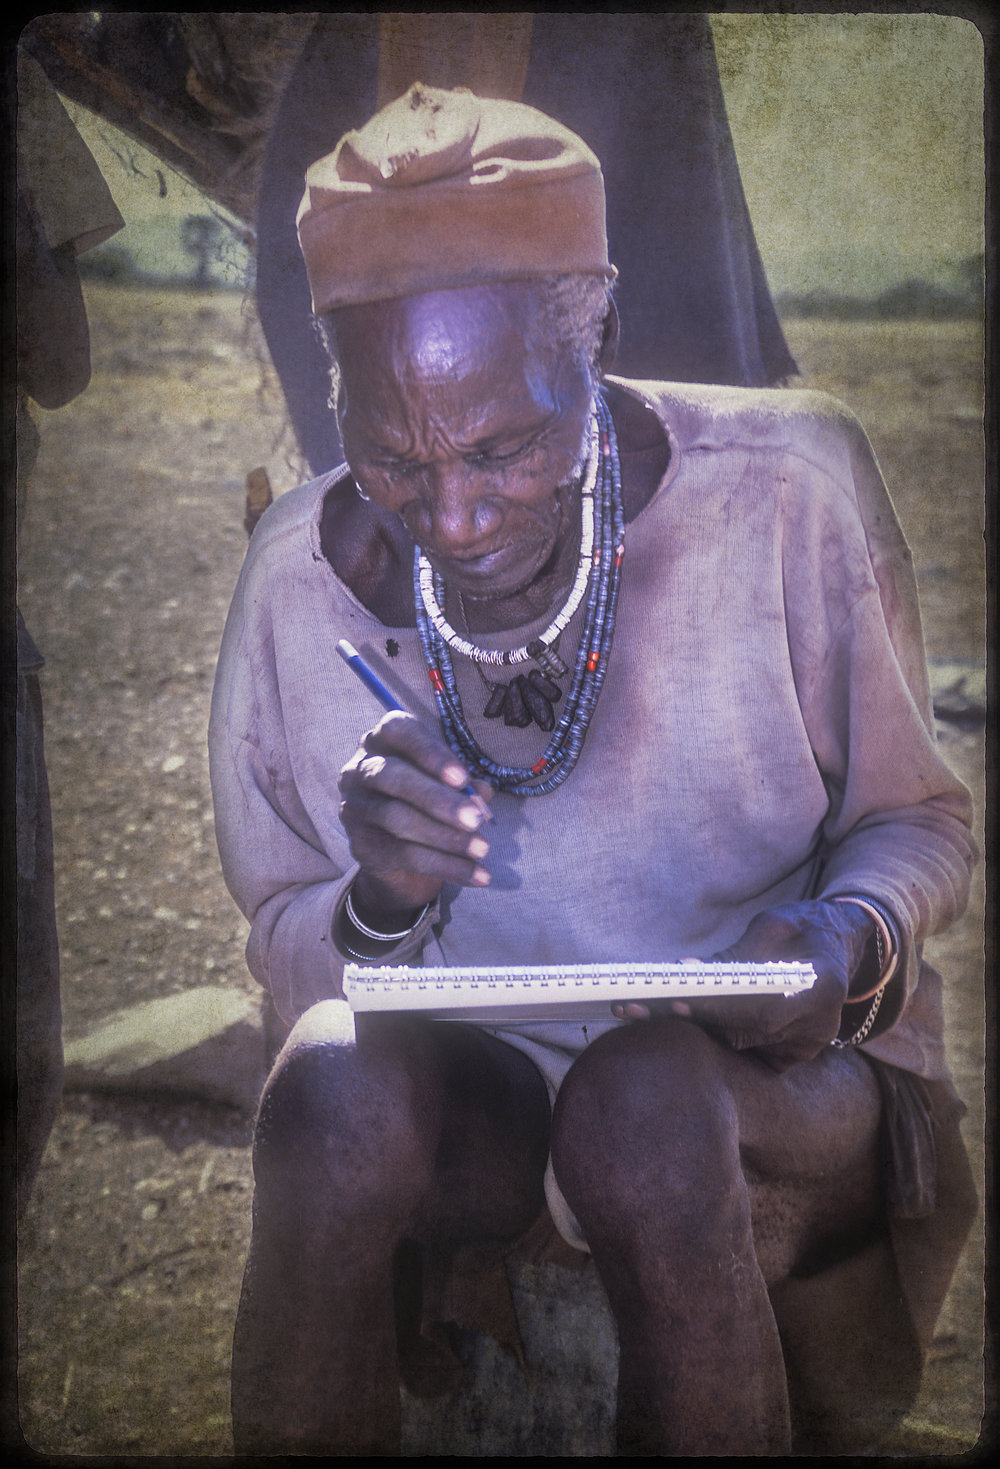 Himba medicine man draws his vision during trance